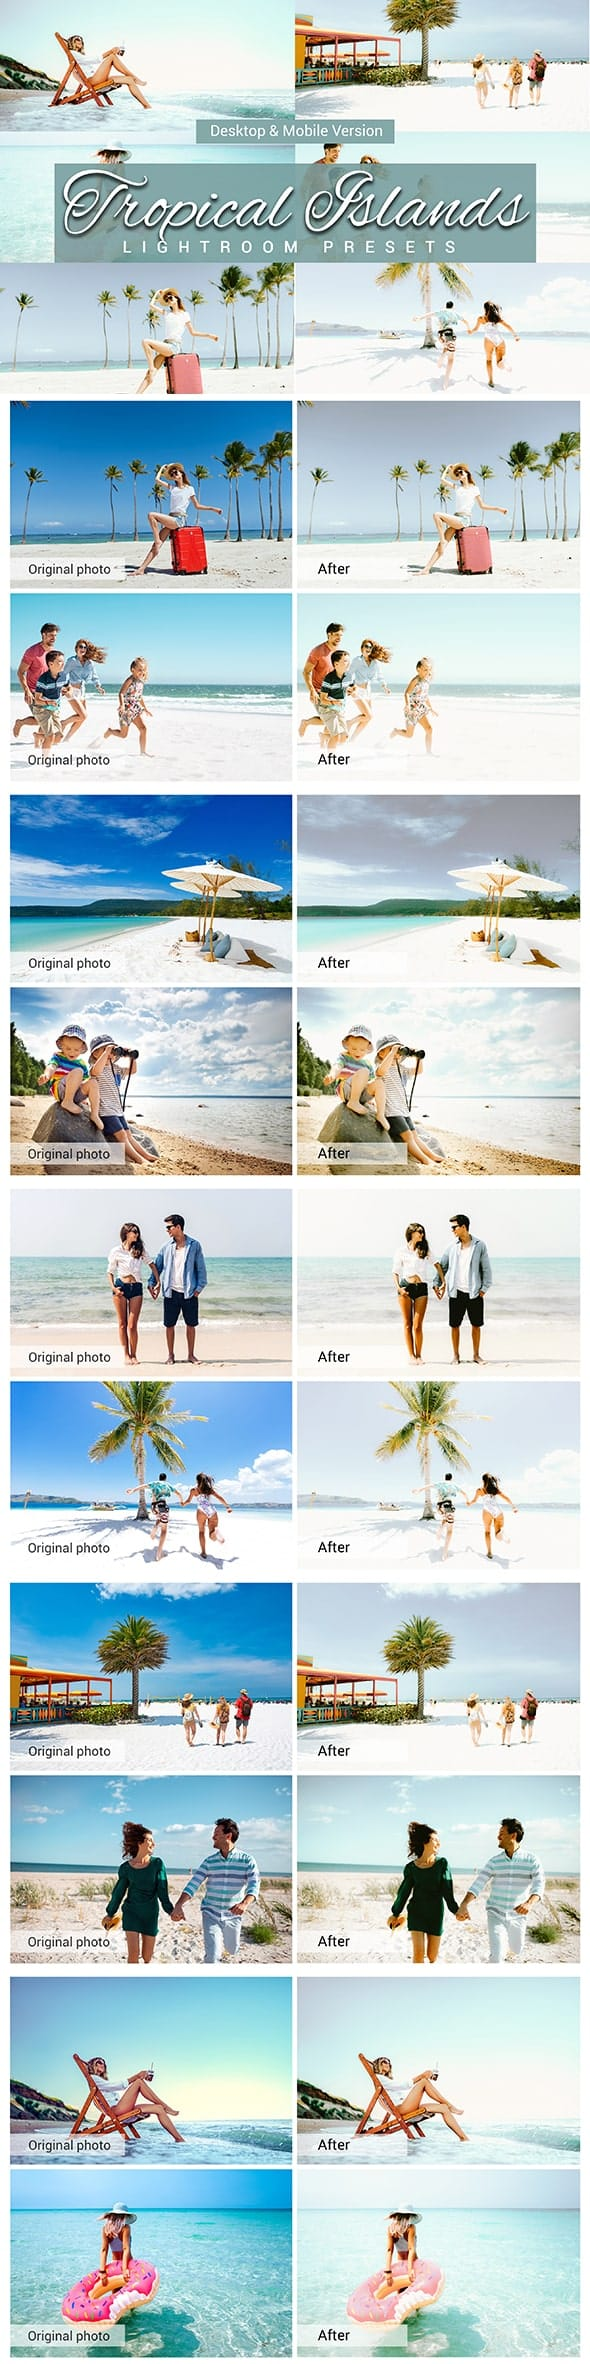 7500 New Complete Bundle Presets Lightroom, Photoshop Actions and Cinematic LUTs - Tropical Islands Preview min